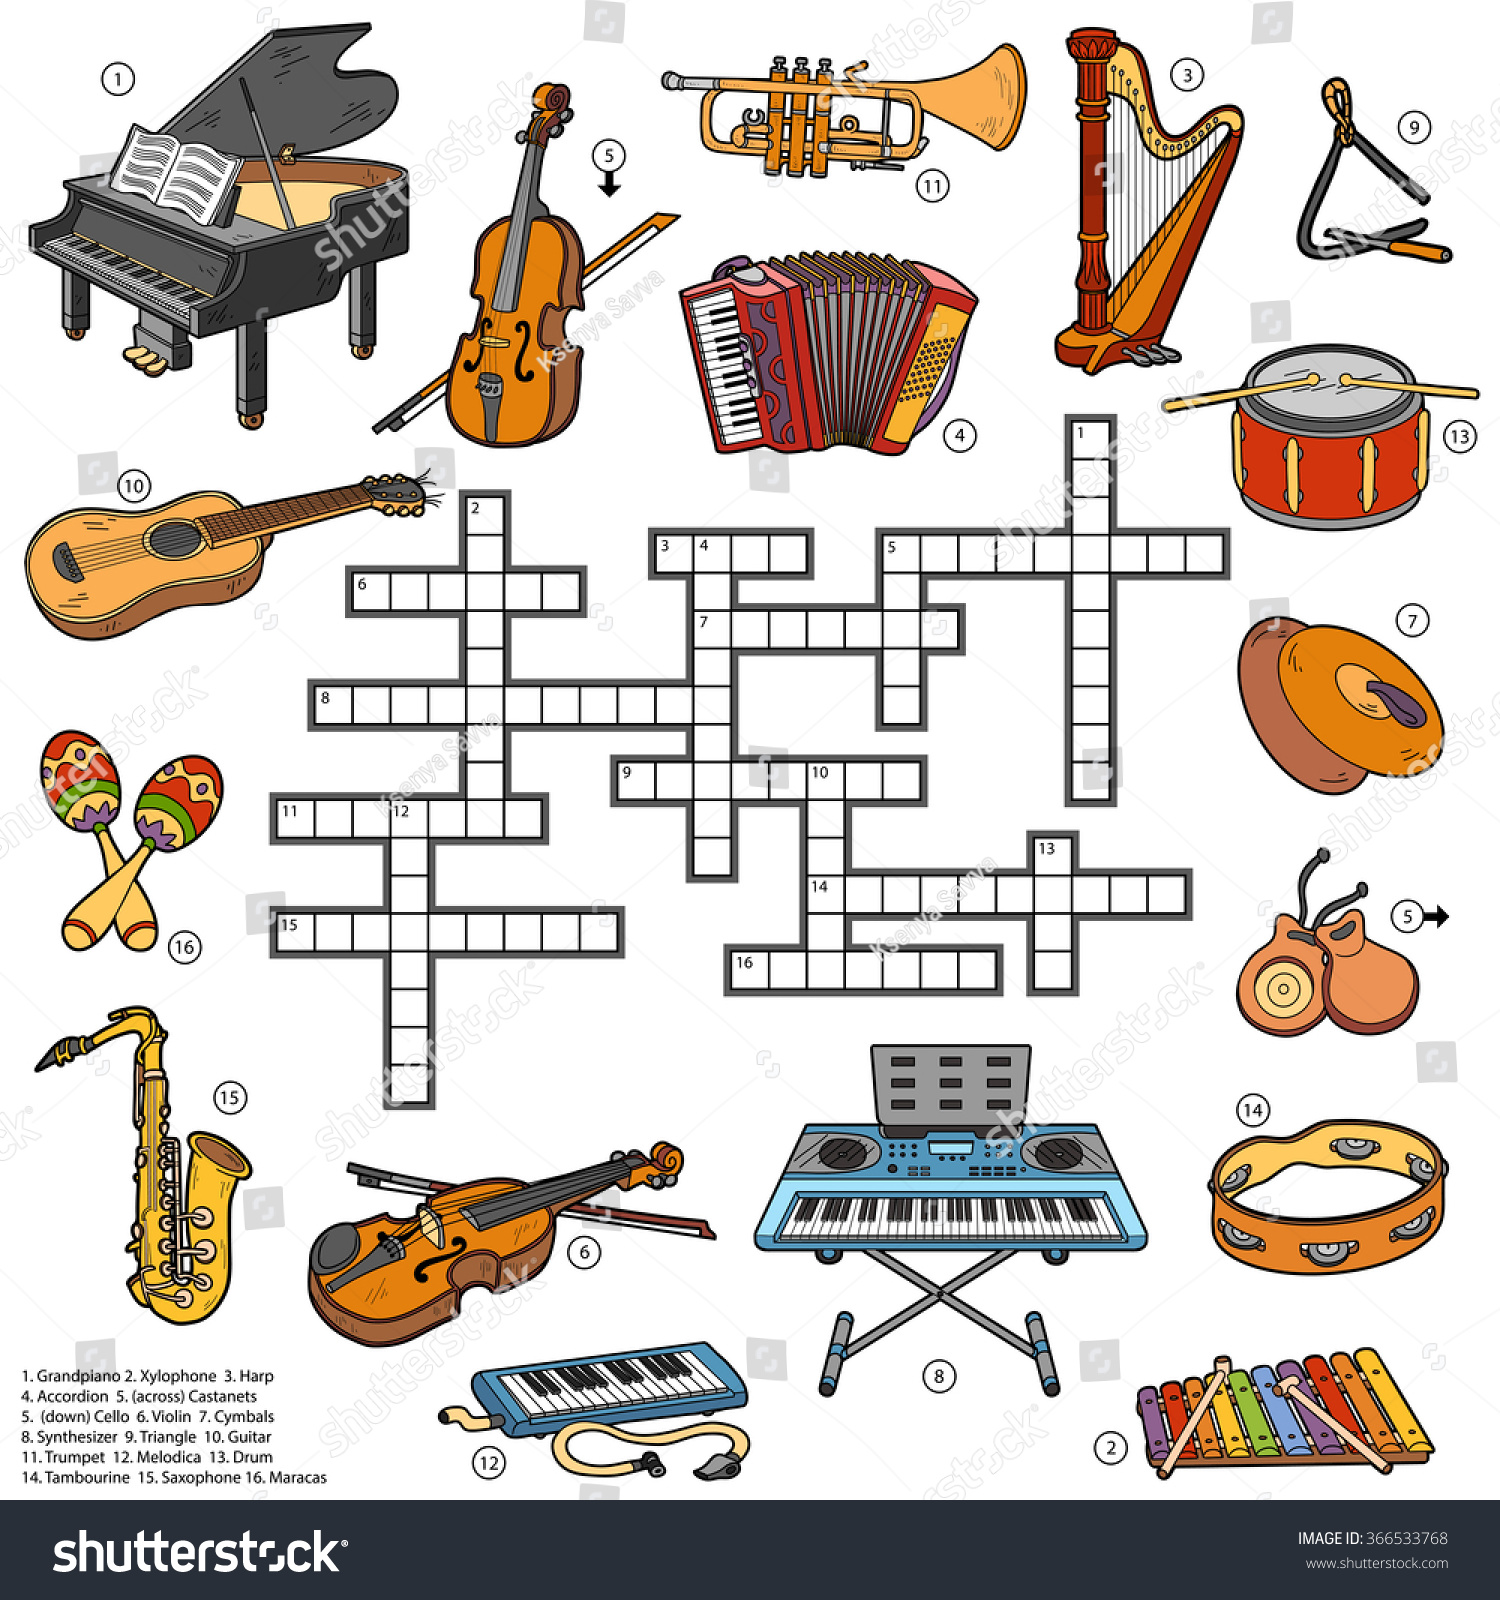 Game with shapes of different colors crossword - Color Crossword Education Game For Children About Music Instruments